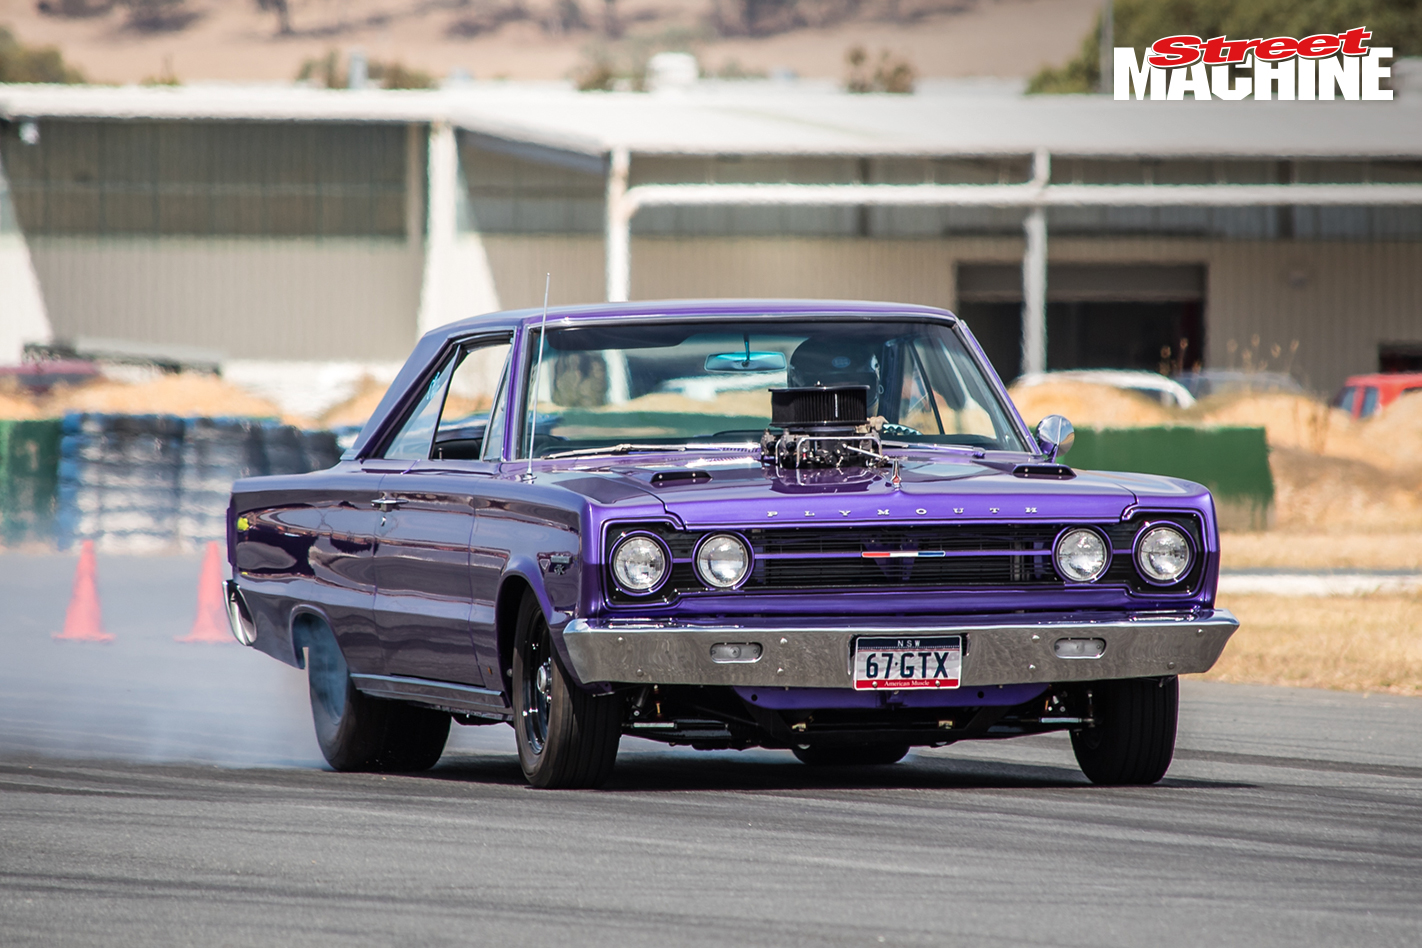 Bmw Of Murray >> 1967 Plymouth GTX at Chryslers On The Murray